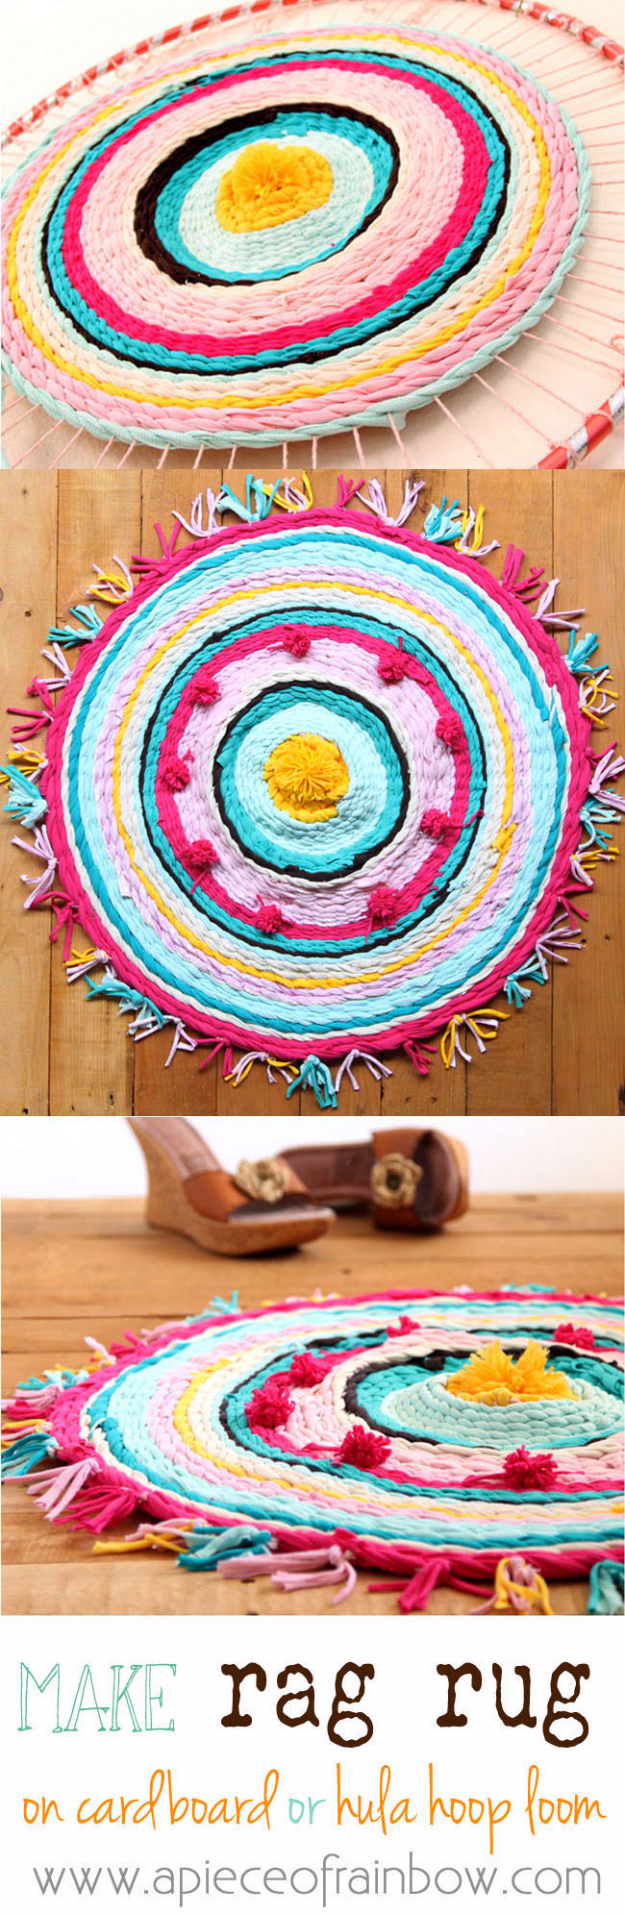 Easy DIY Rugs and Handmade Rug Making Project Ideas - Rag Rug From Old T-Shirts - Simple Home Decor for Your Floors, Fabric, Area, Painting Ideas, Rag Rugs, No Sew, Dropcloth and Braided Rug Tutorials